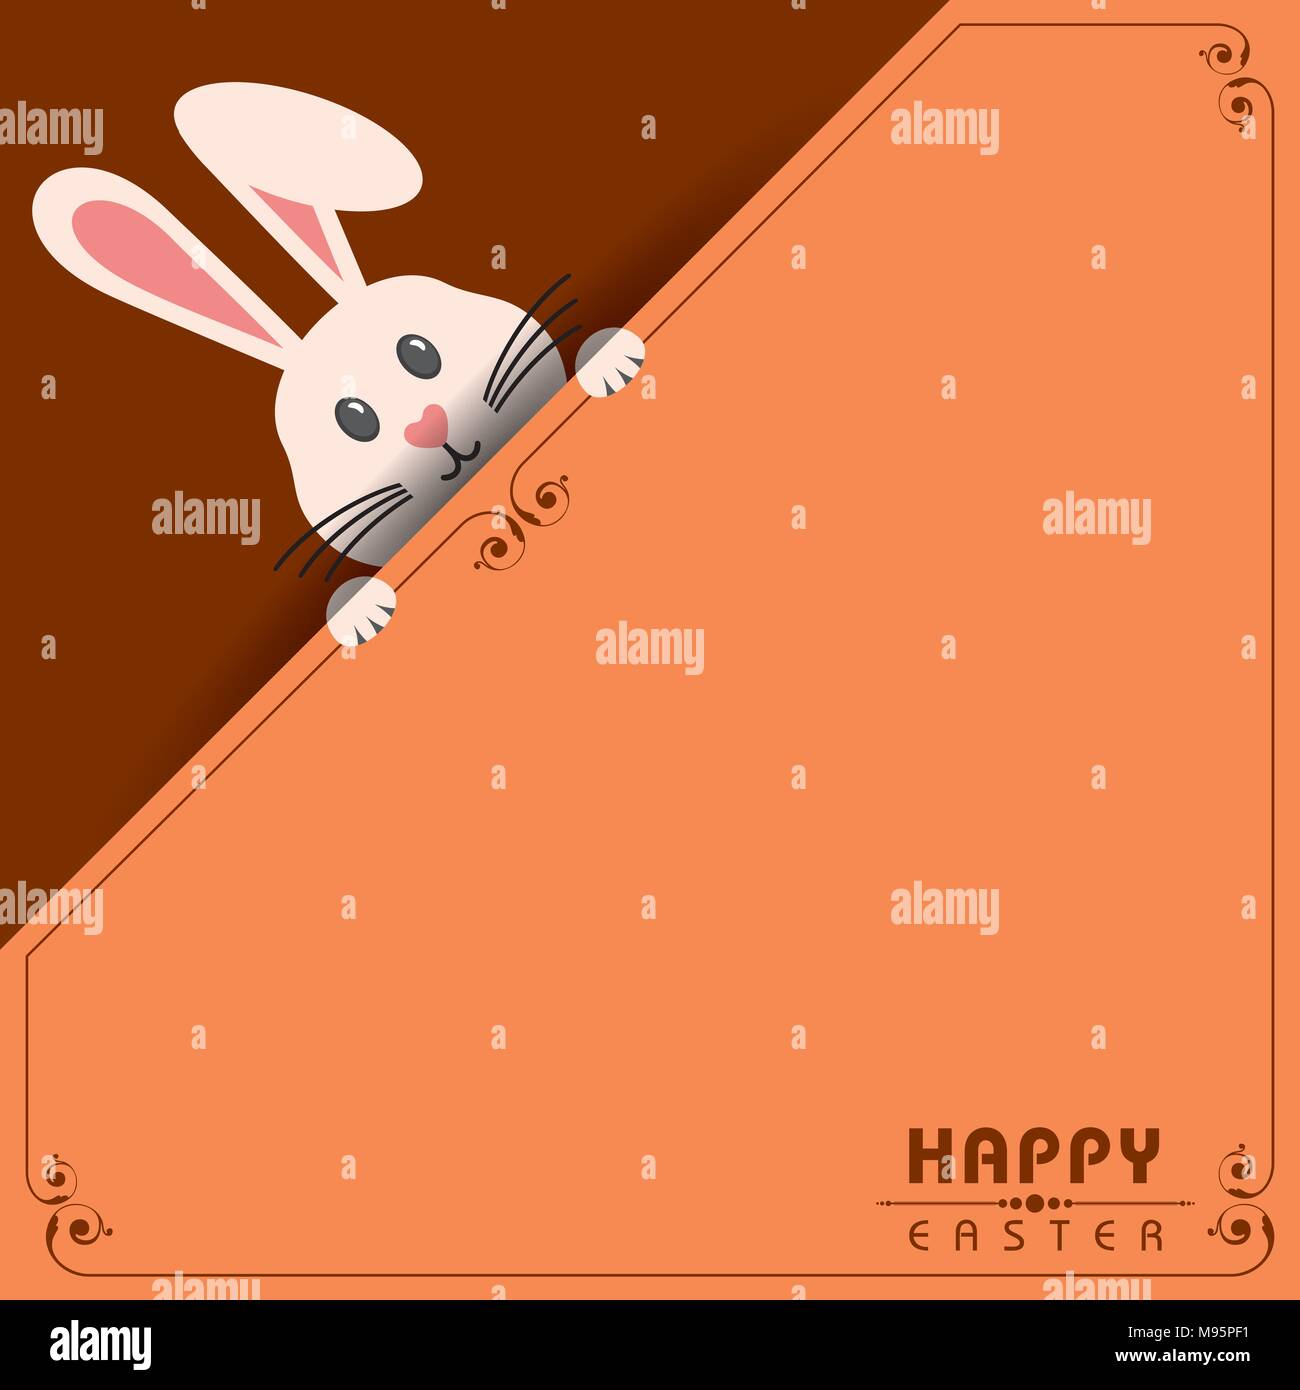 Colorful Happy Easter greeting card with rabbit, bunny, eggs and banners - Stock Vector